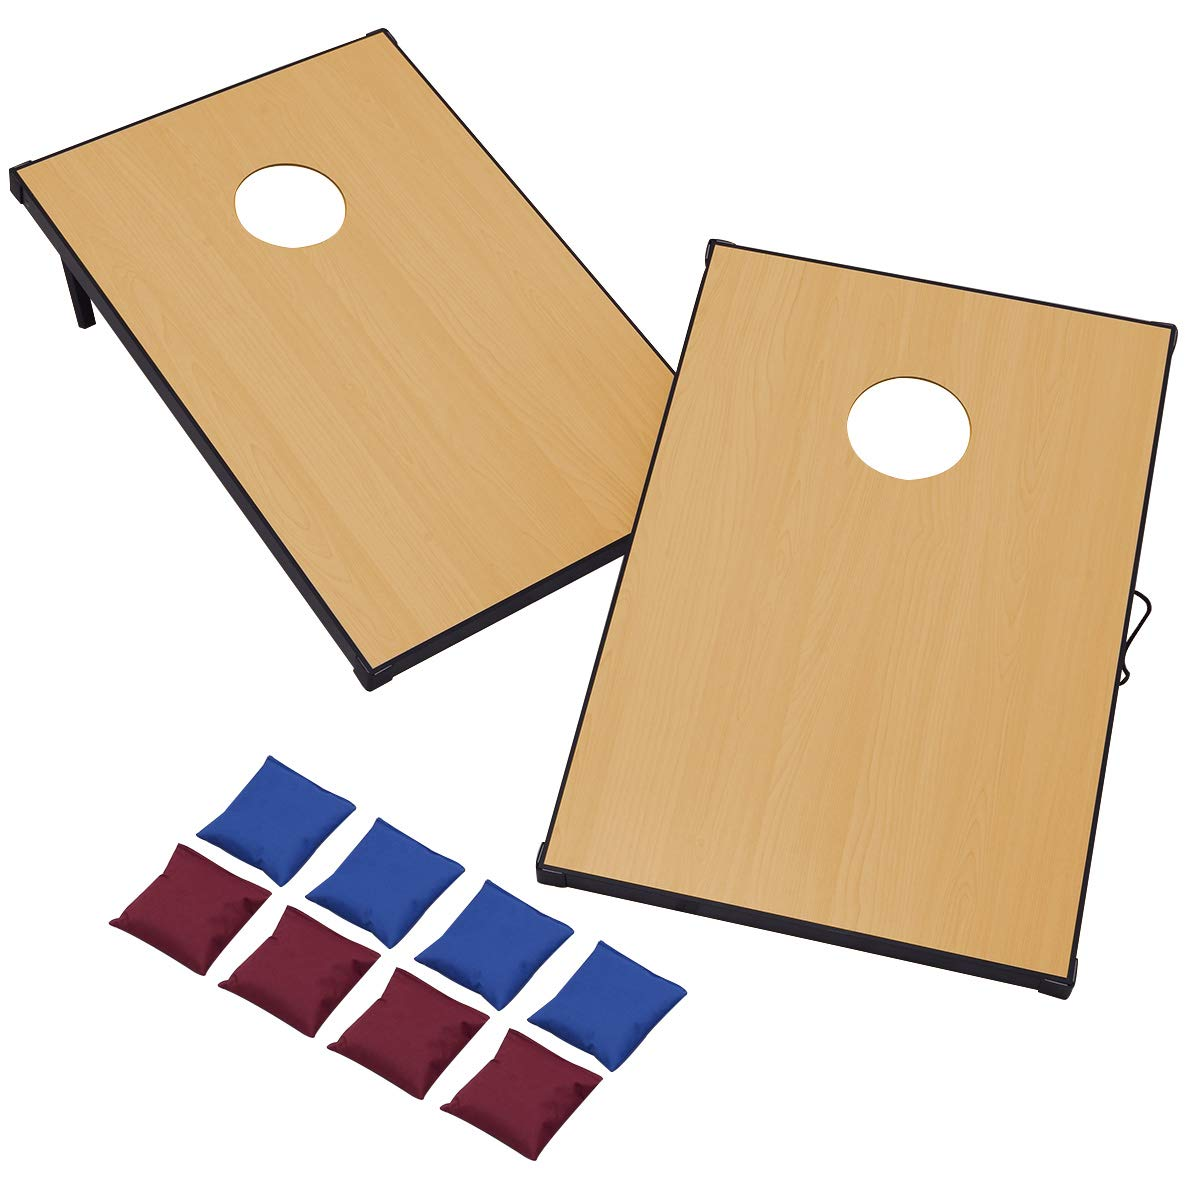 GYMAX Classic Cornhole Bean Bag Toss Game Set Portable with Solid Wood Corn Toss Boards and 8 Bean Bags (35.5'' x 23.5'' x 3'') by GYMAX (Image #1)